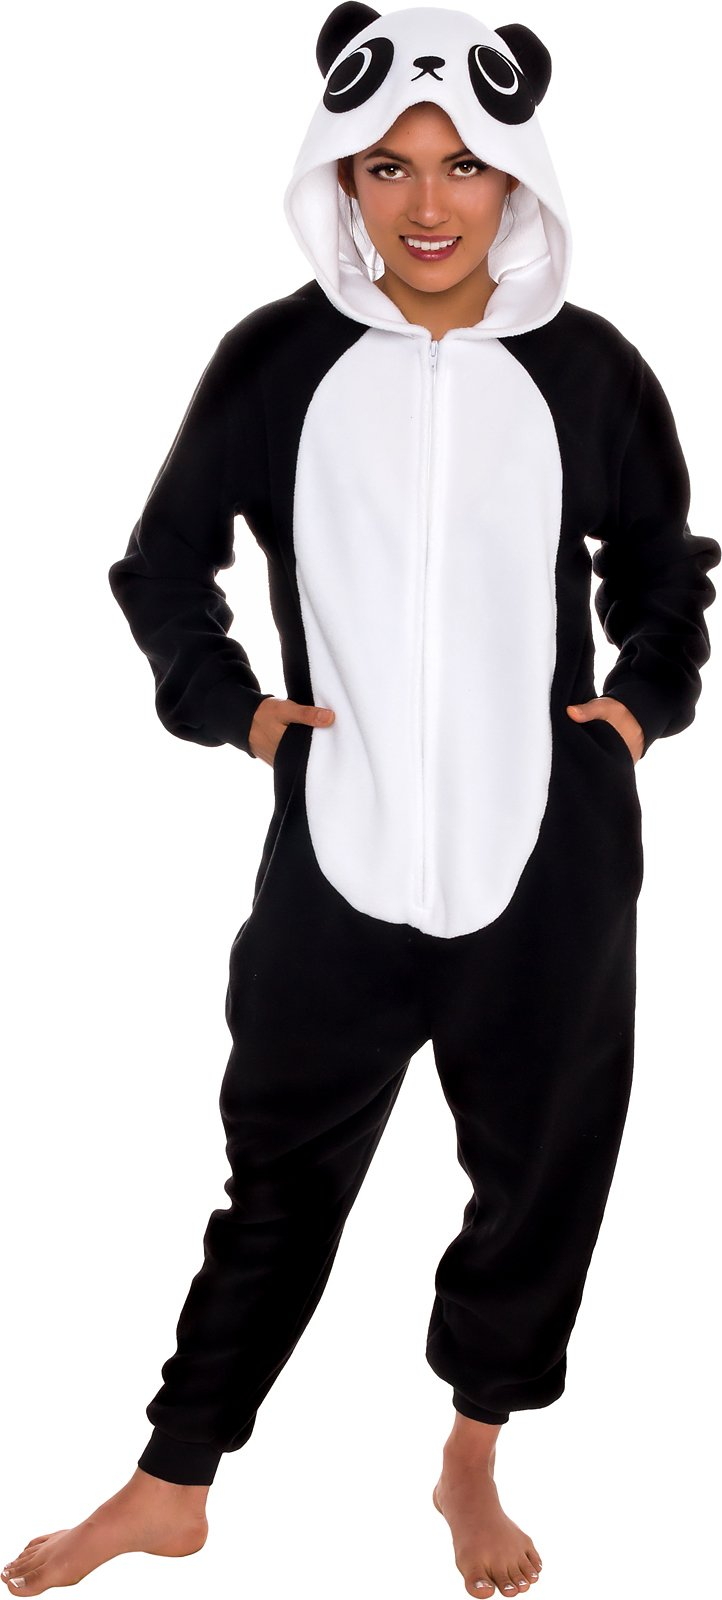 Silver Lilly Slim Fit Animal Pajamas - Adult One Piece Cosplay Panda Costume  (Black White b5473b641